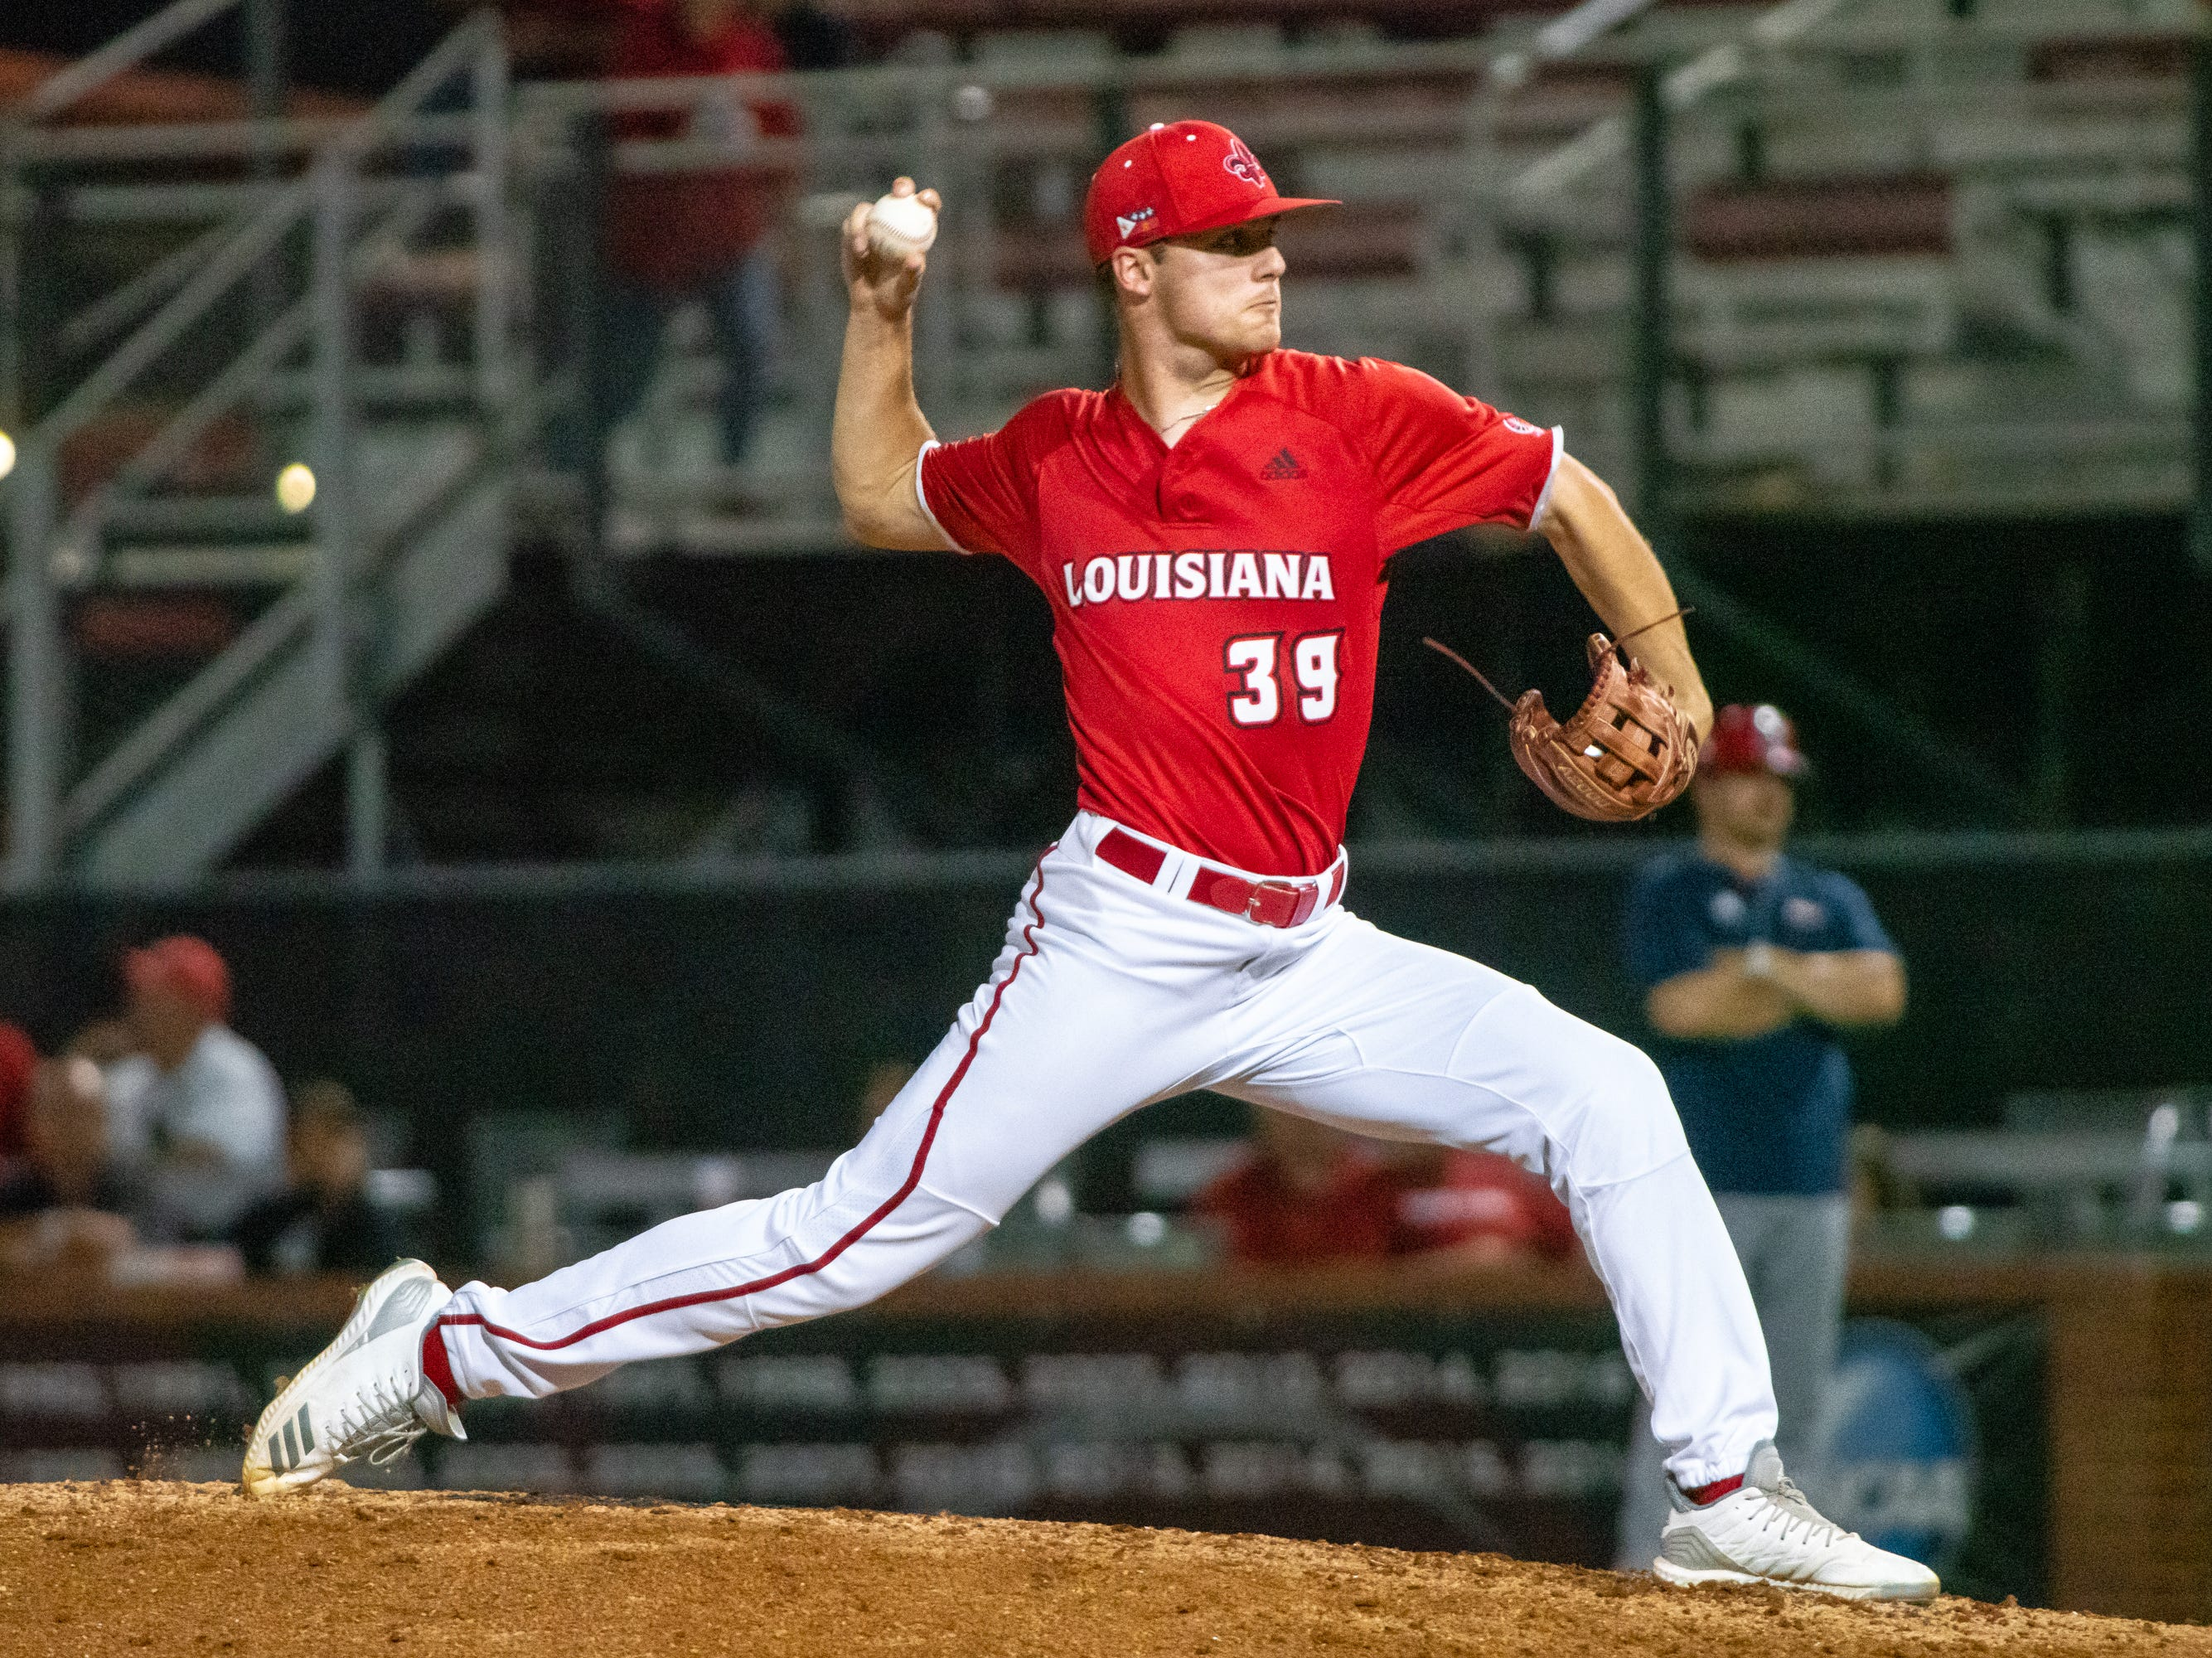 """UL's Michael Leaumont winds up a pitch on the mound as the Ragin' Cajuns take on the South Alabama Jaguars at M.L. """"Tigue"""" Moore Field on Friday, April 4, 2019."""